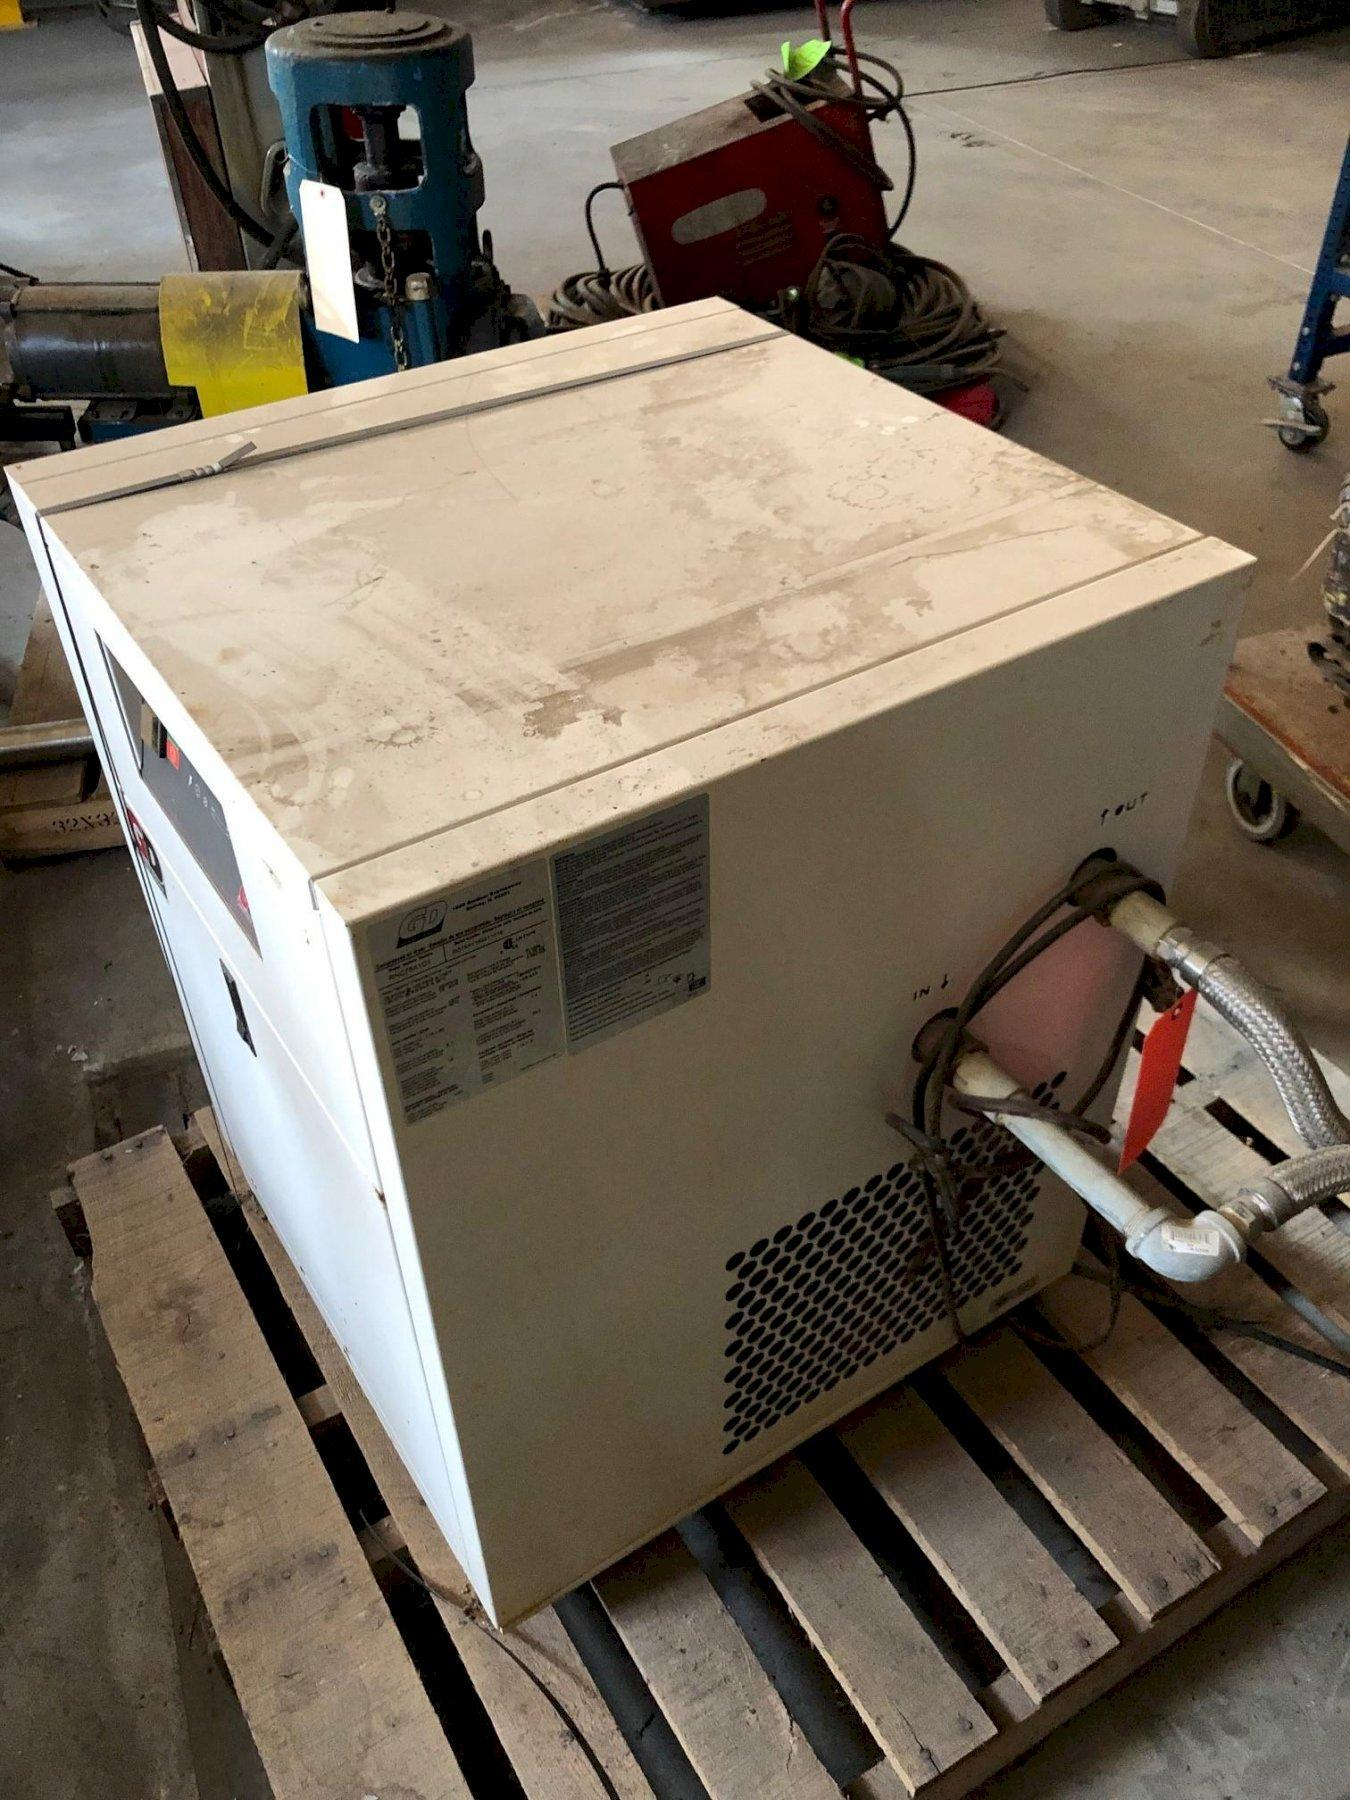 Gardner Denver Model RNC75A1C1 Air Dryer